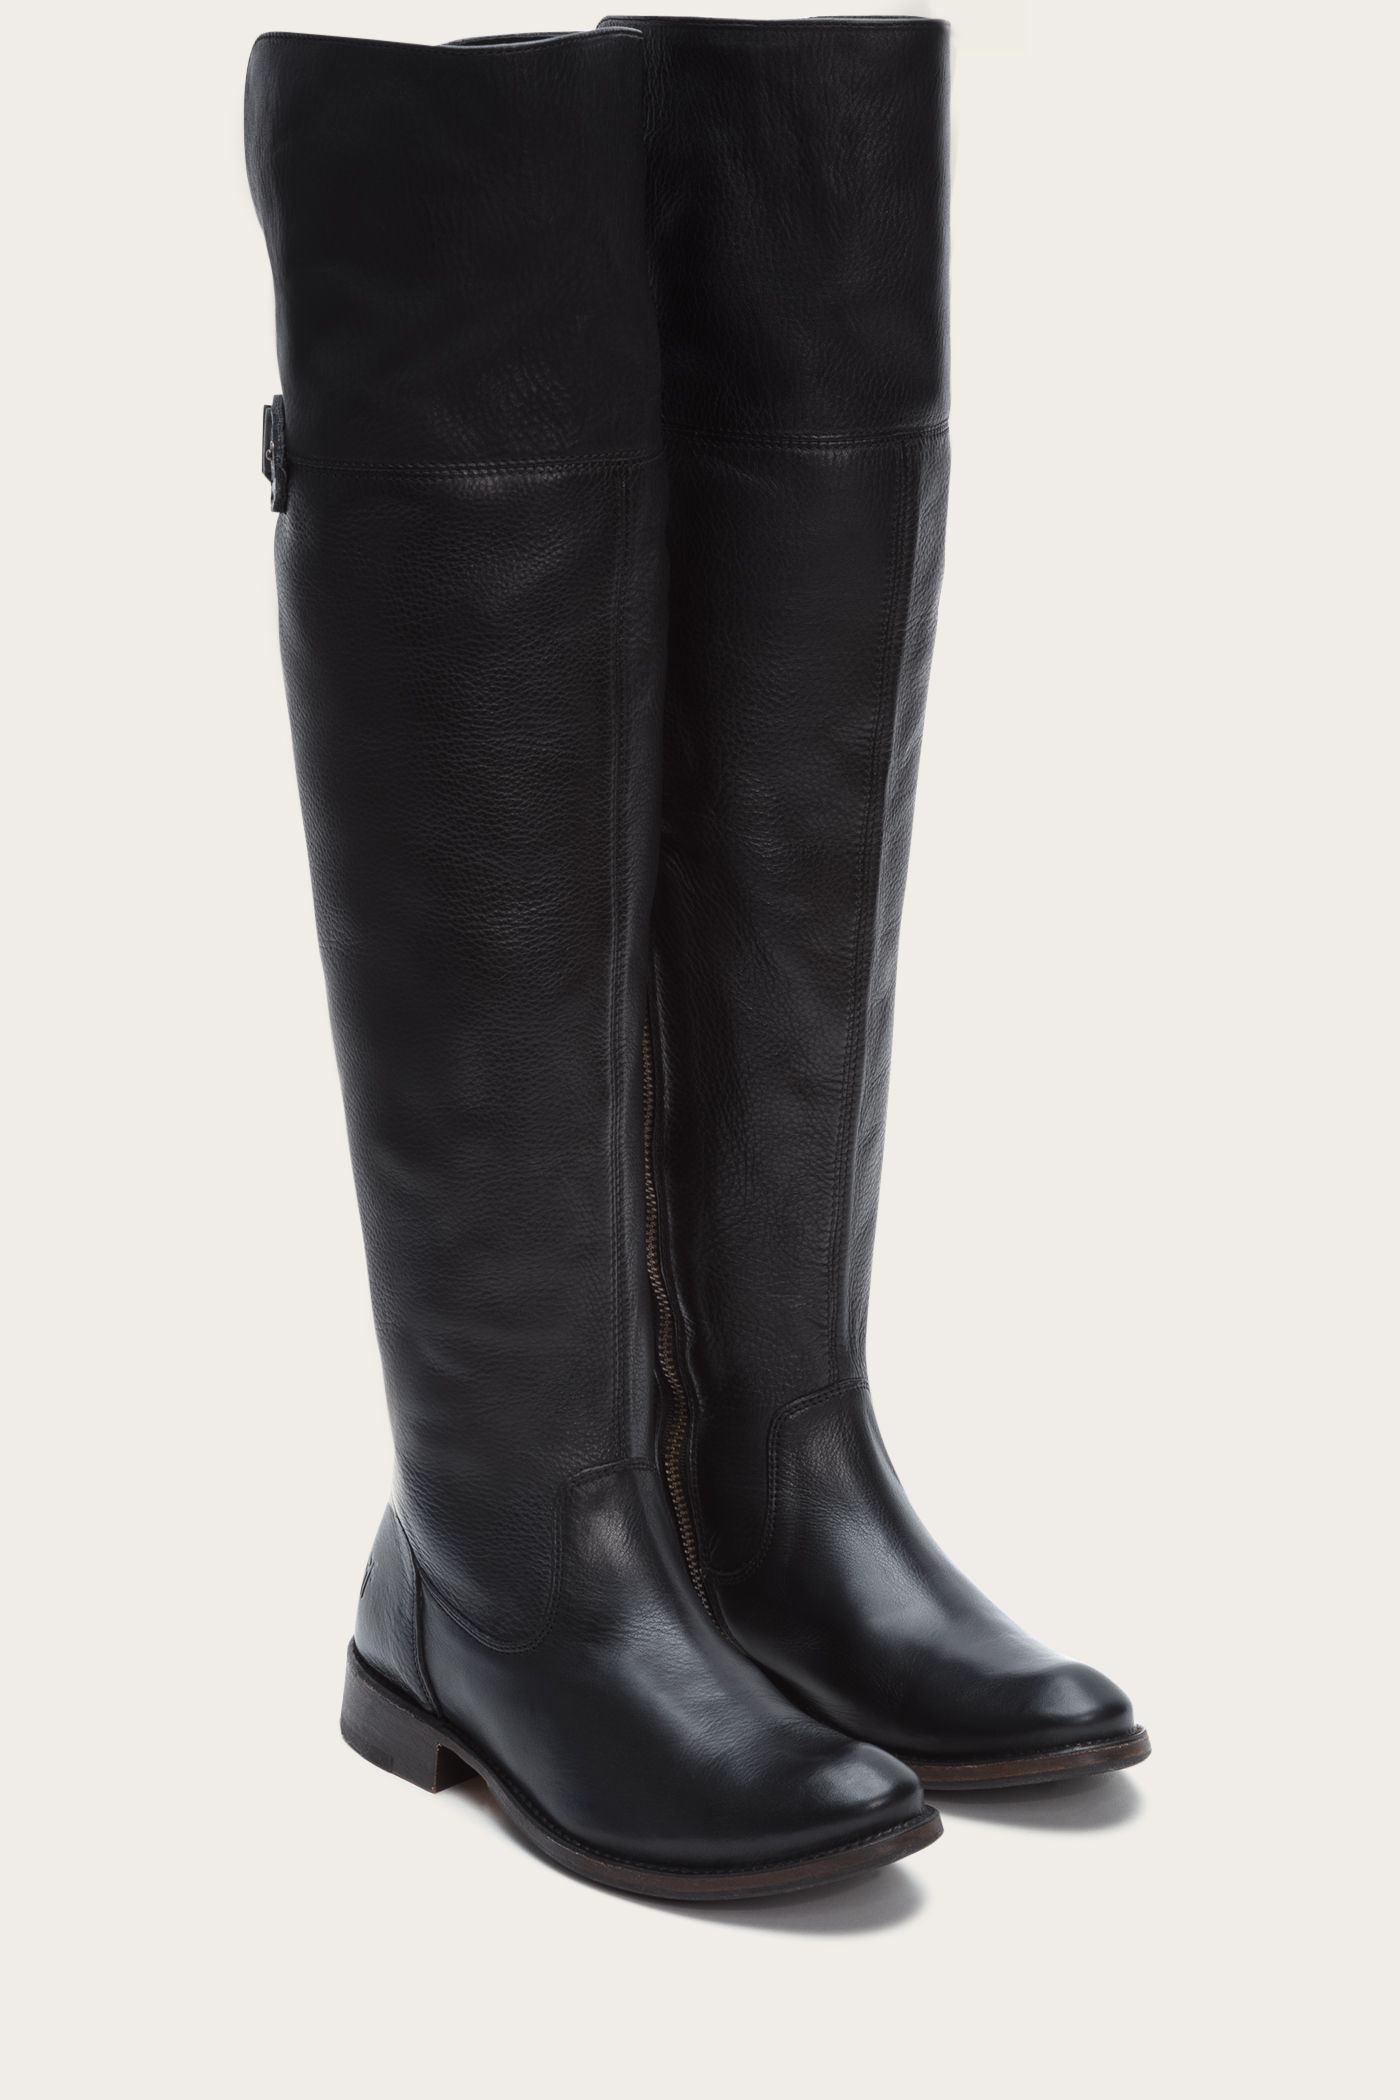 Shirley Otk Wide Black Frye Boots Over The Knee Boots Otk Boots Outfit